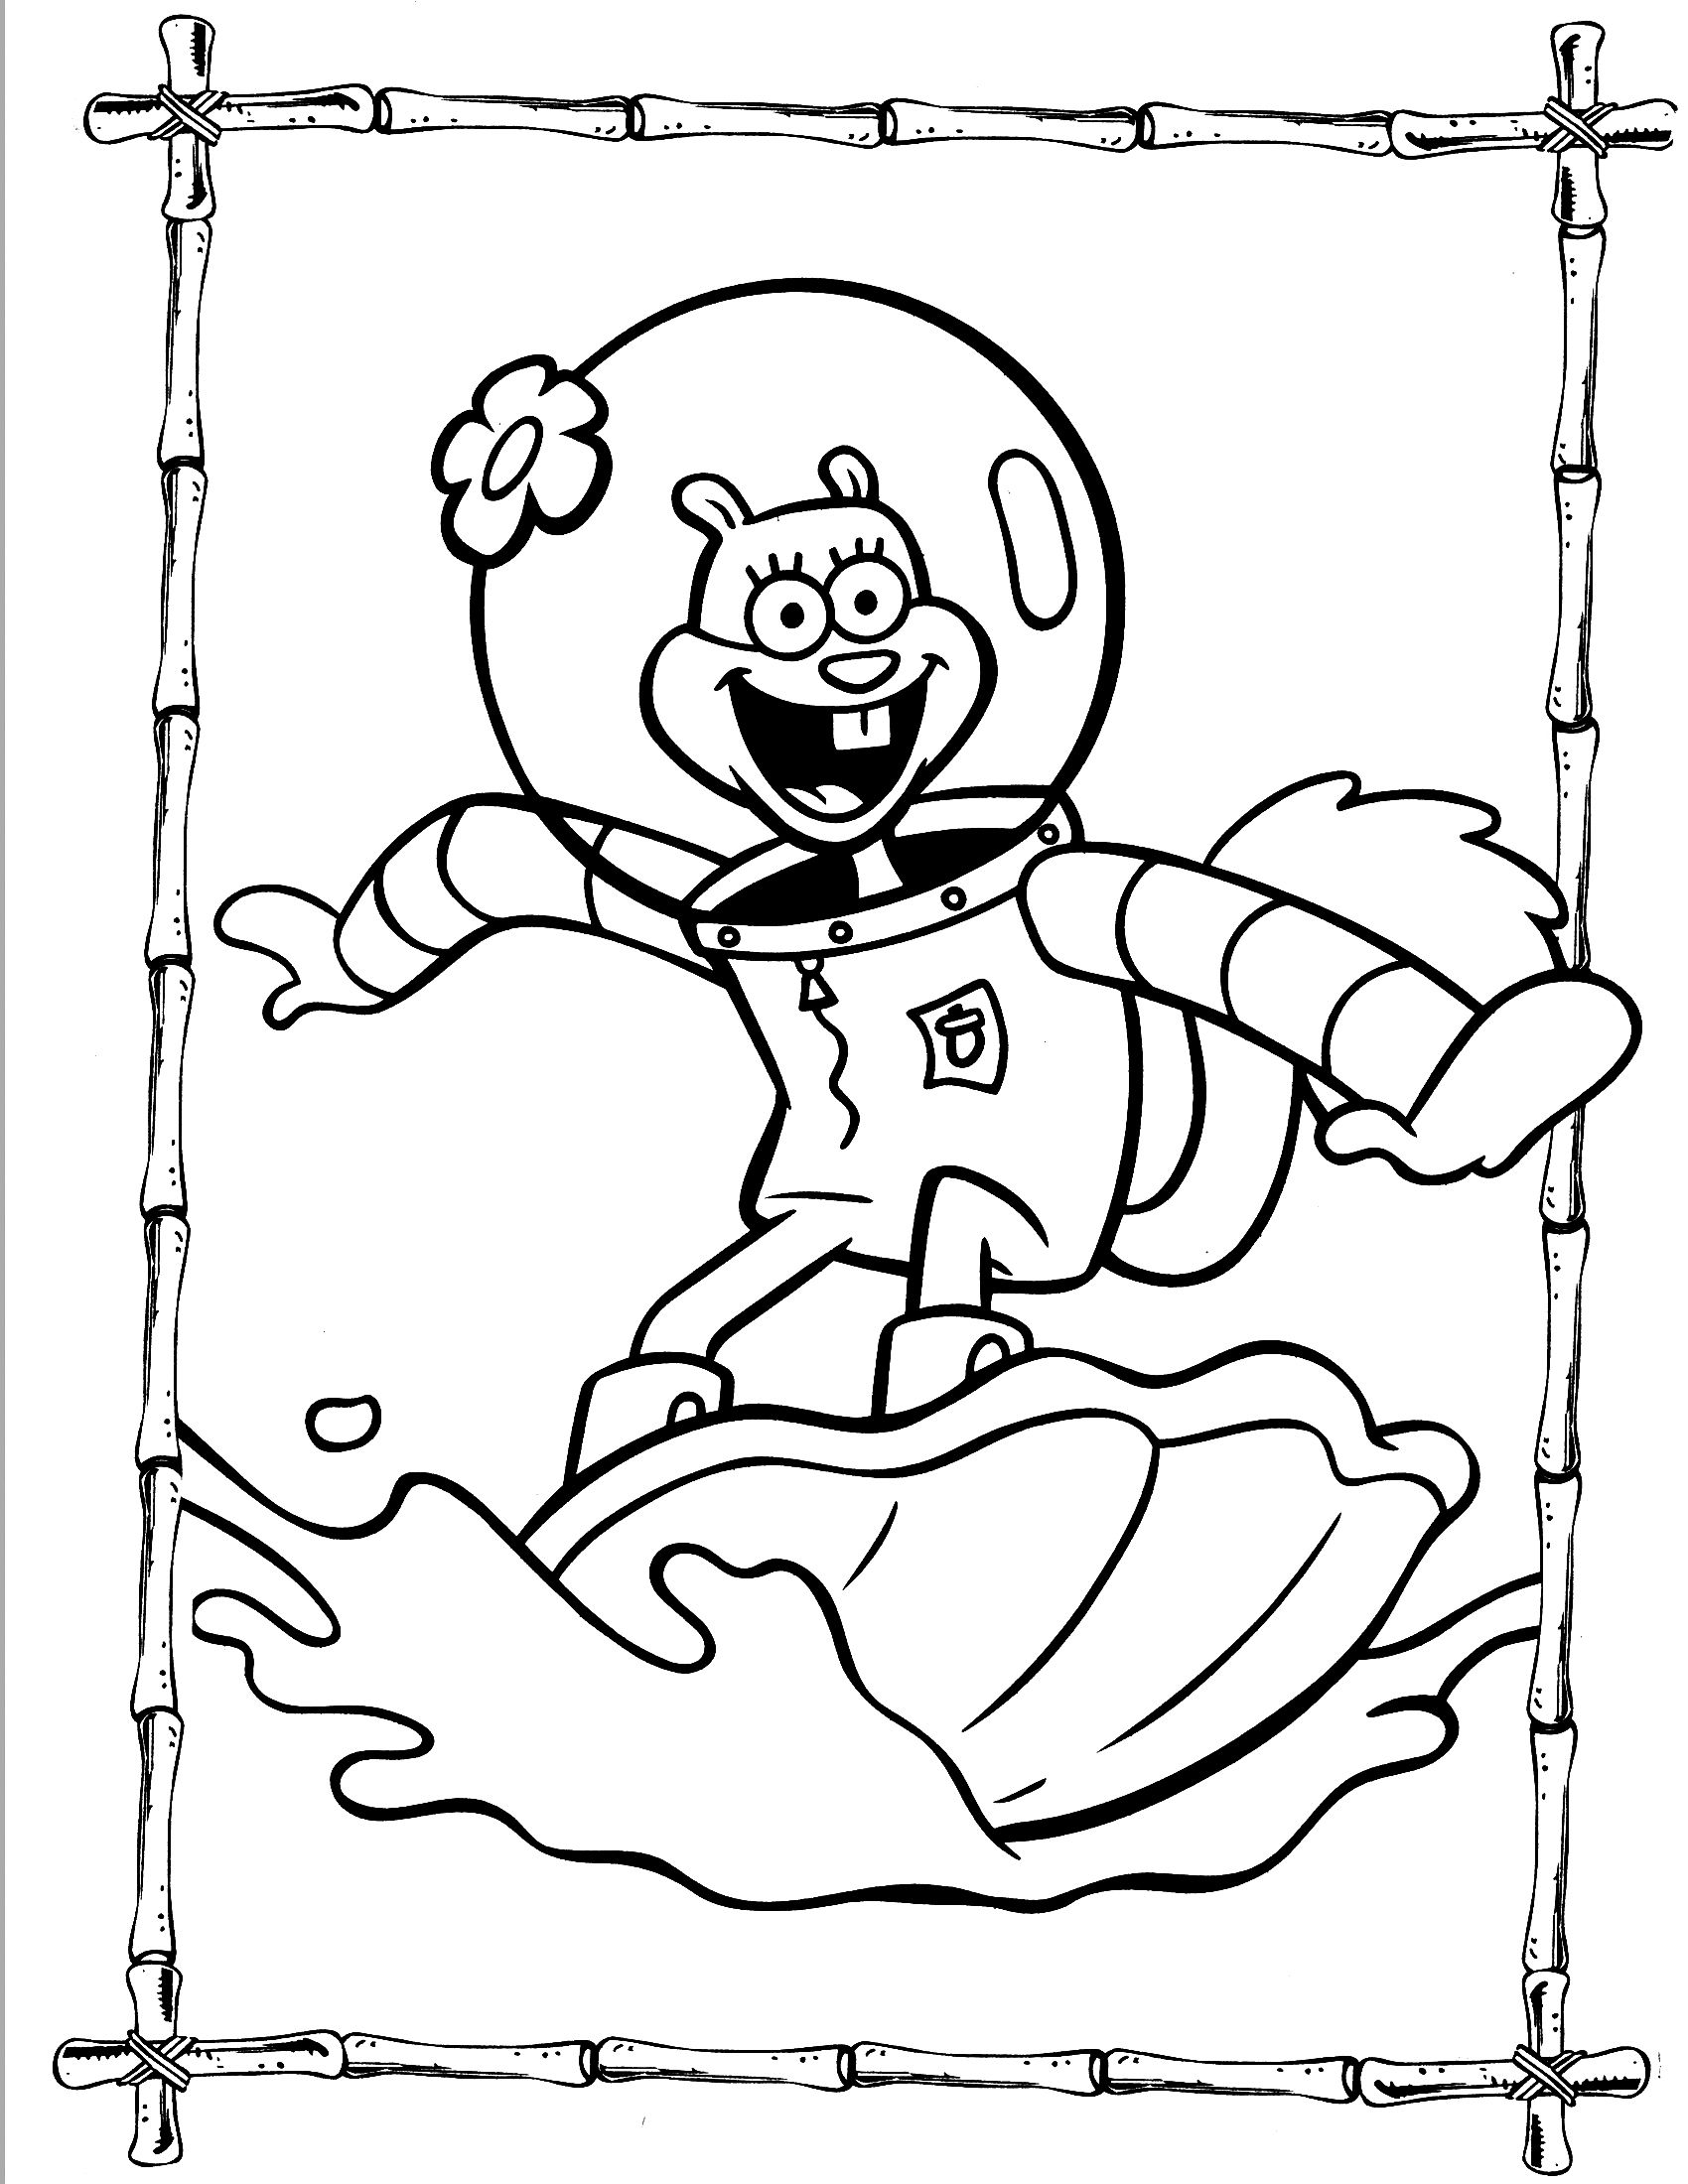 Thanksgiving Coloring Pages Free Spongebob Games